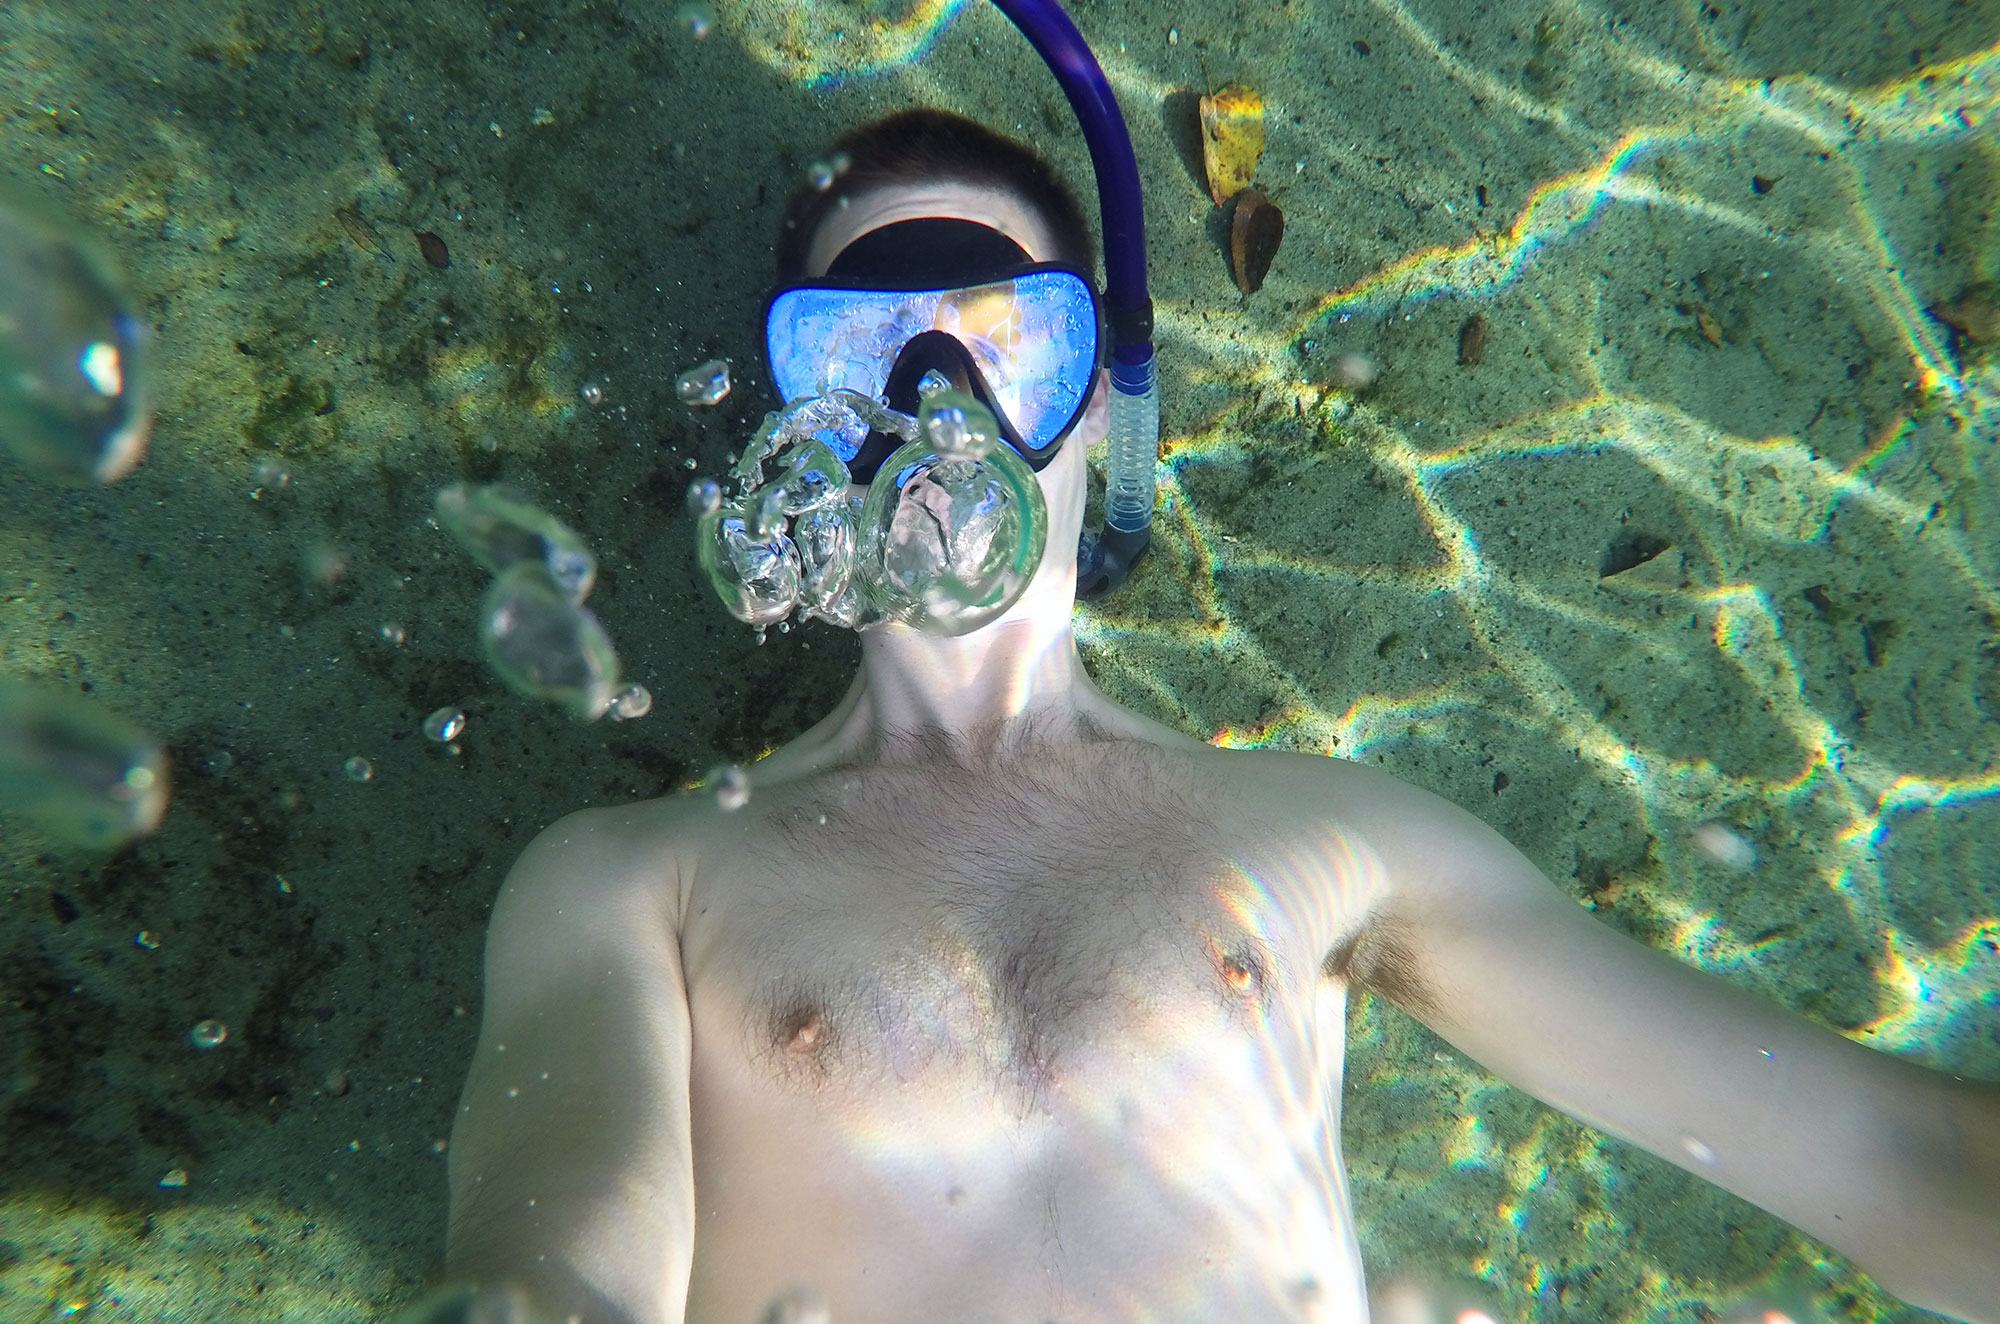 Brad blowing ring bubbles underwater at Wekiwa Natural Spring State Park in Florida during our gap year